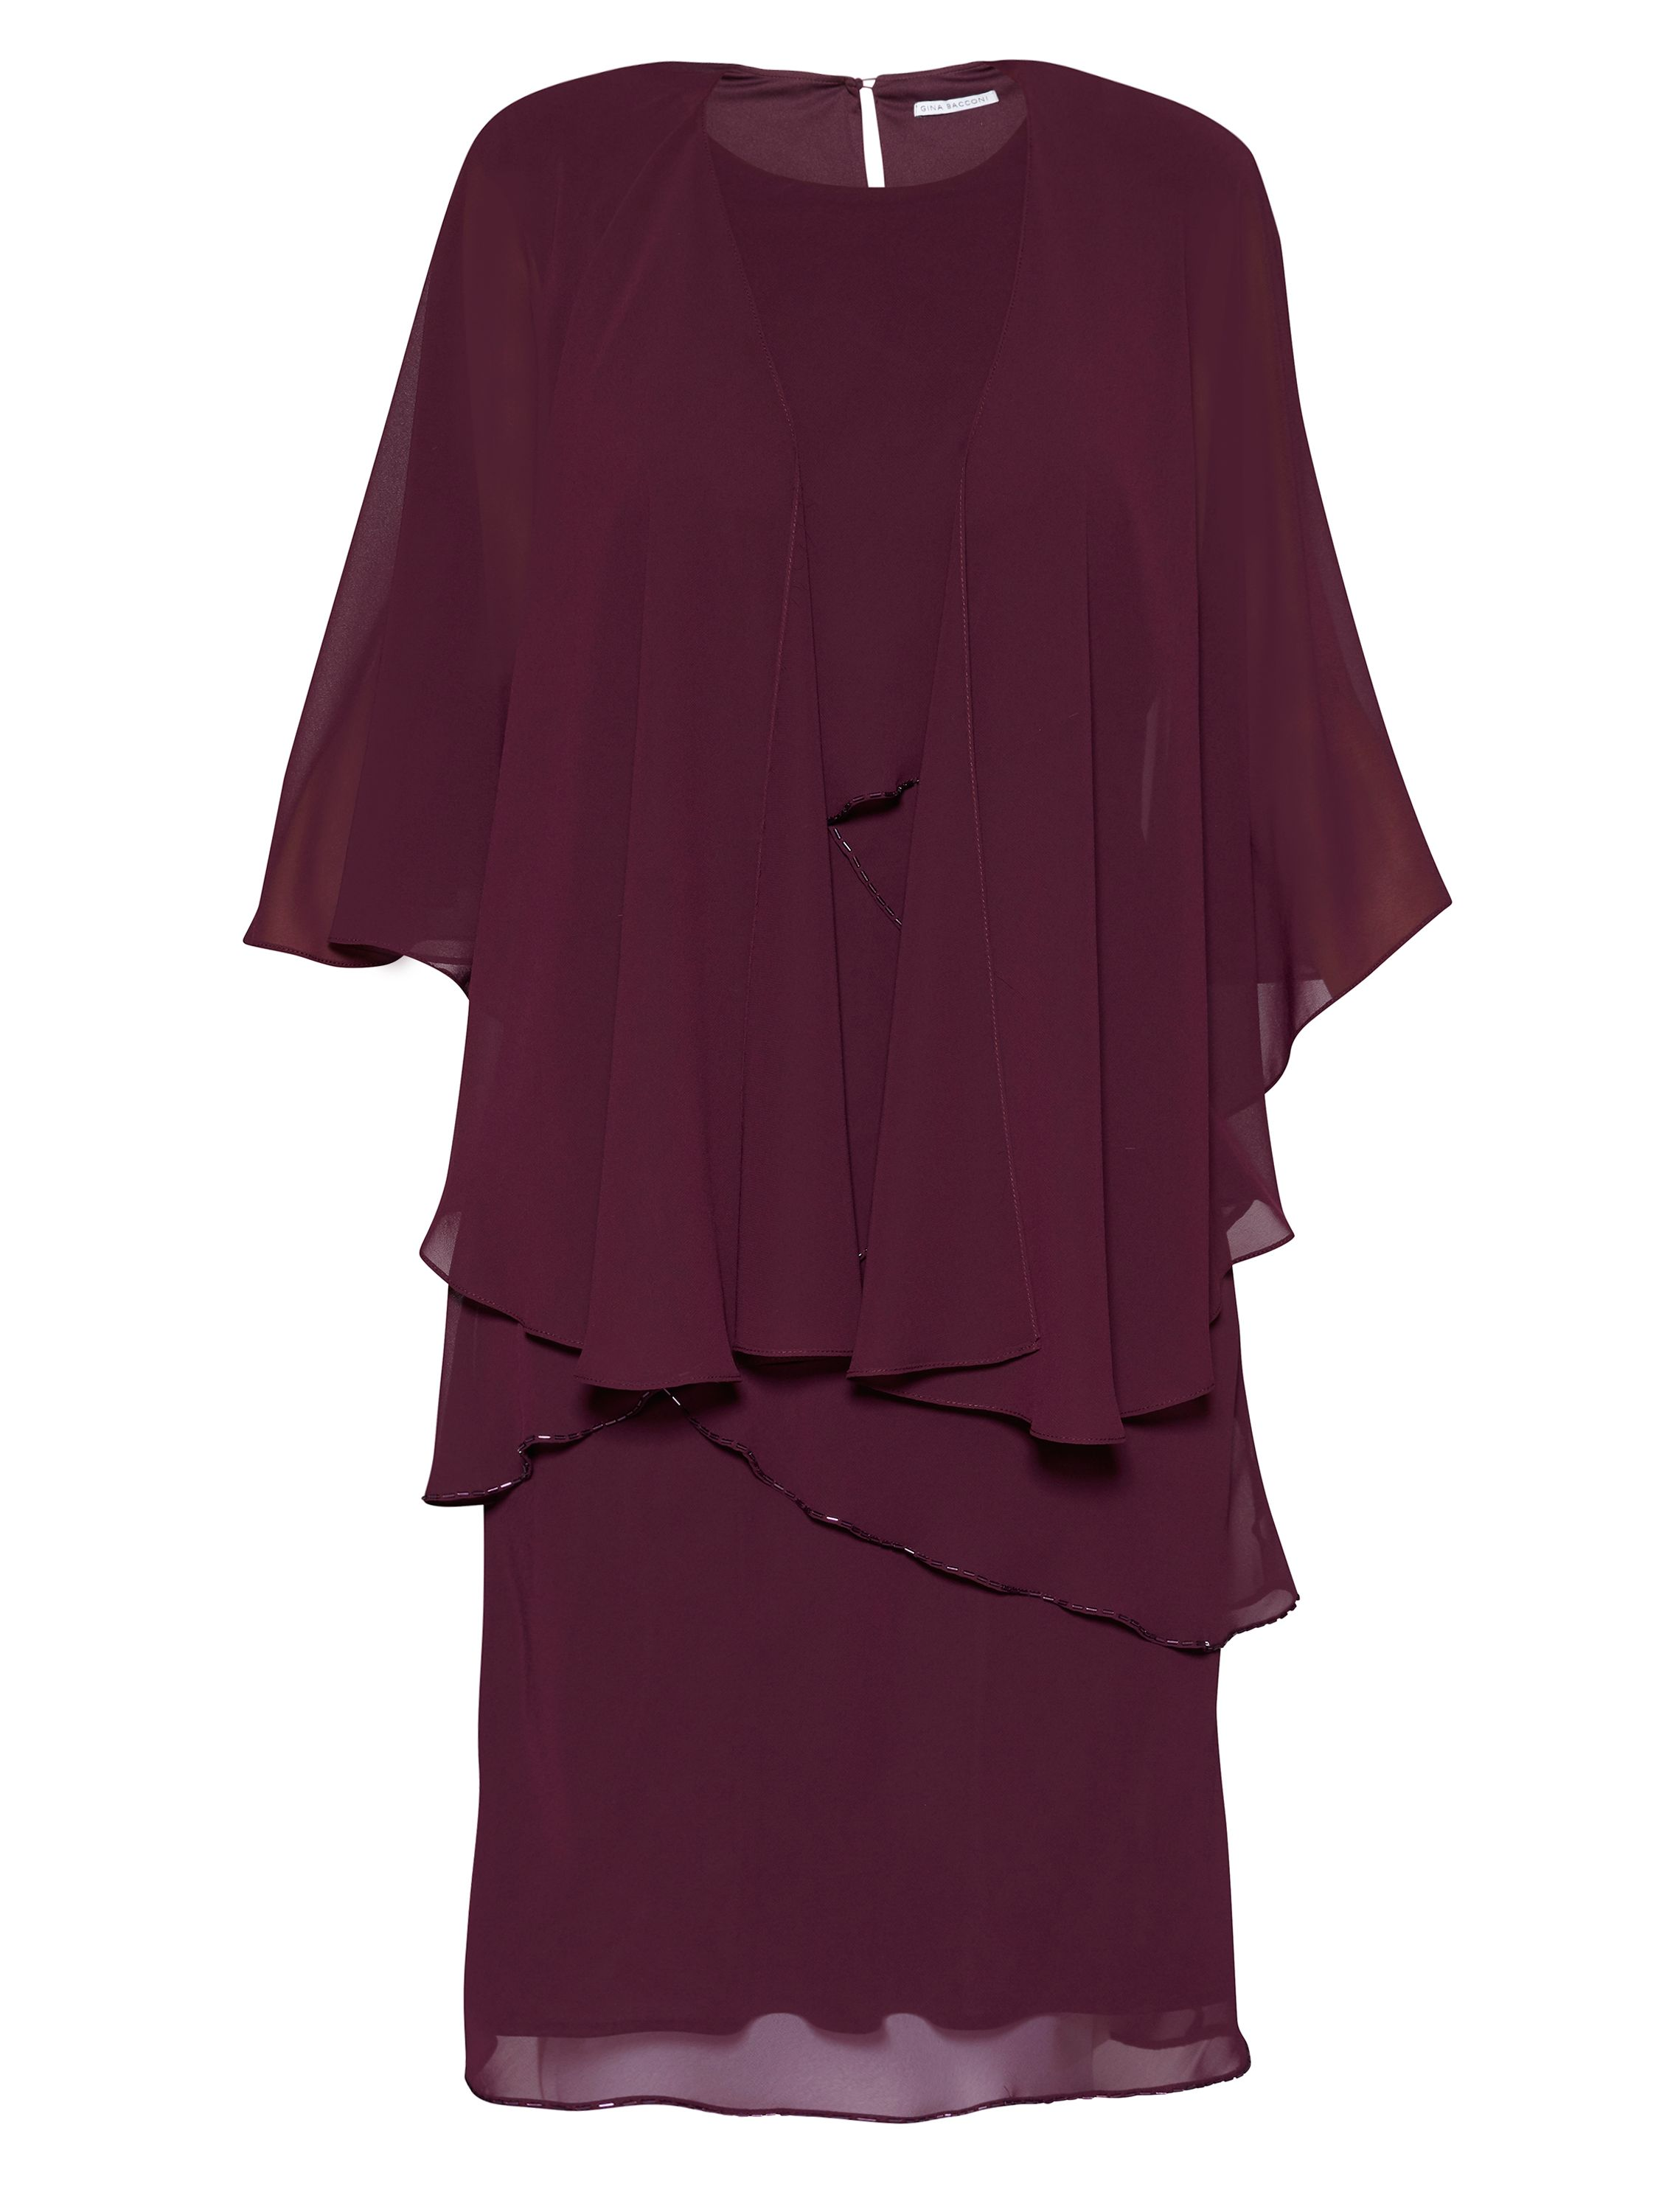 Gina Bacconi Eleanor Dress With Shawl, Red